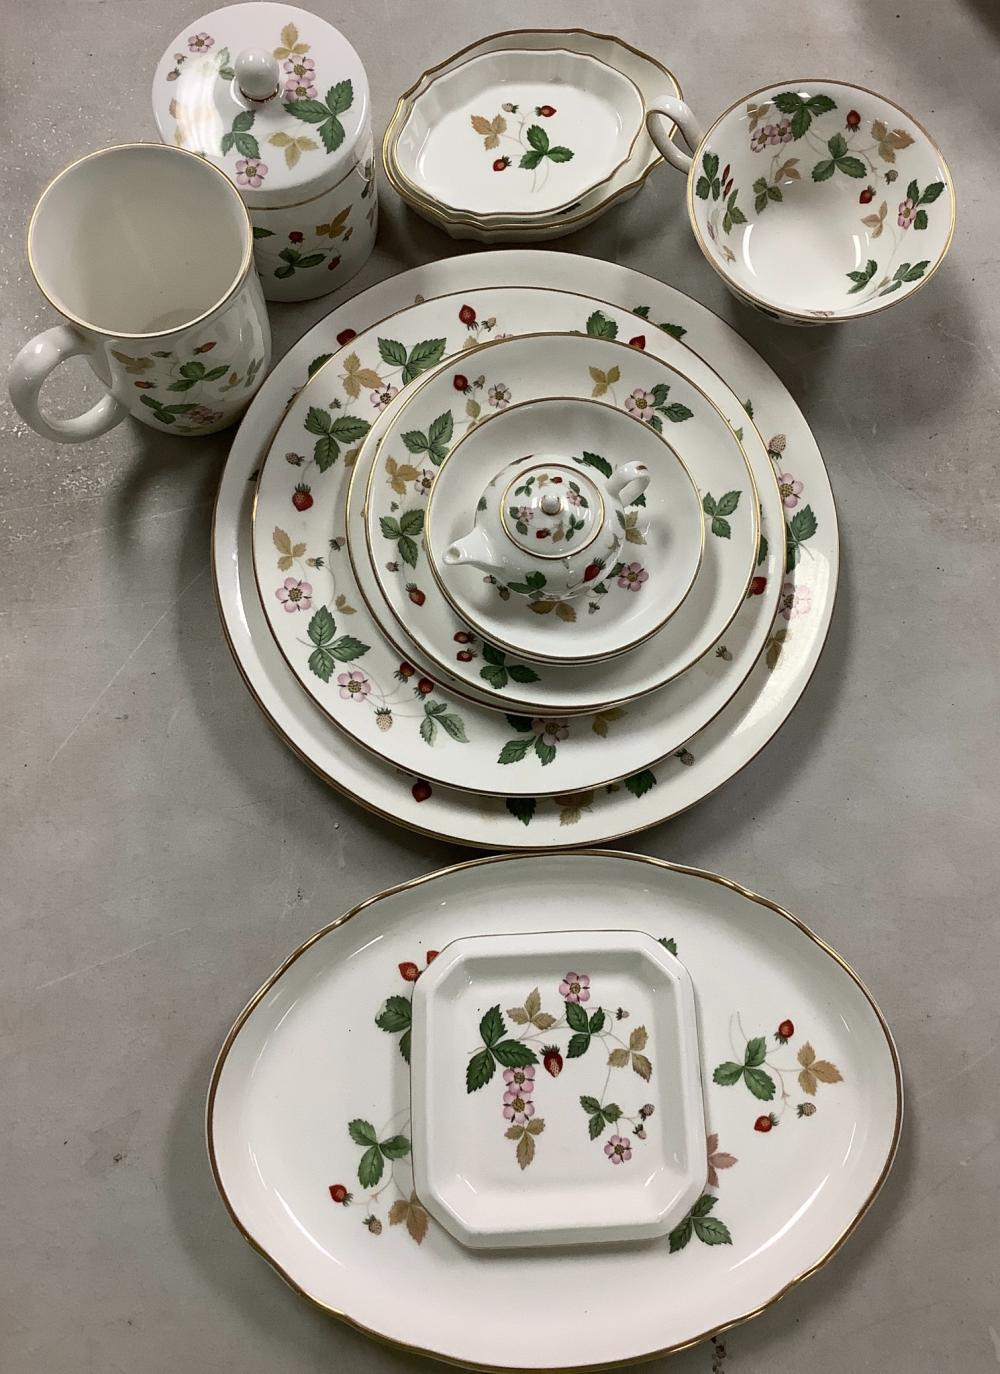 15 Pieces of Wedgewood china.